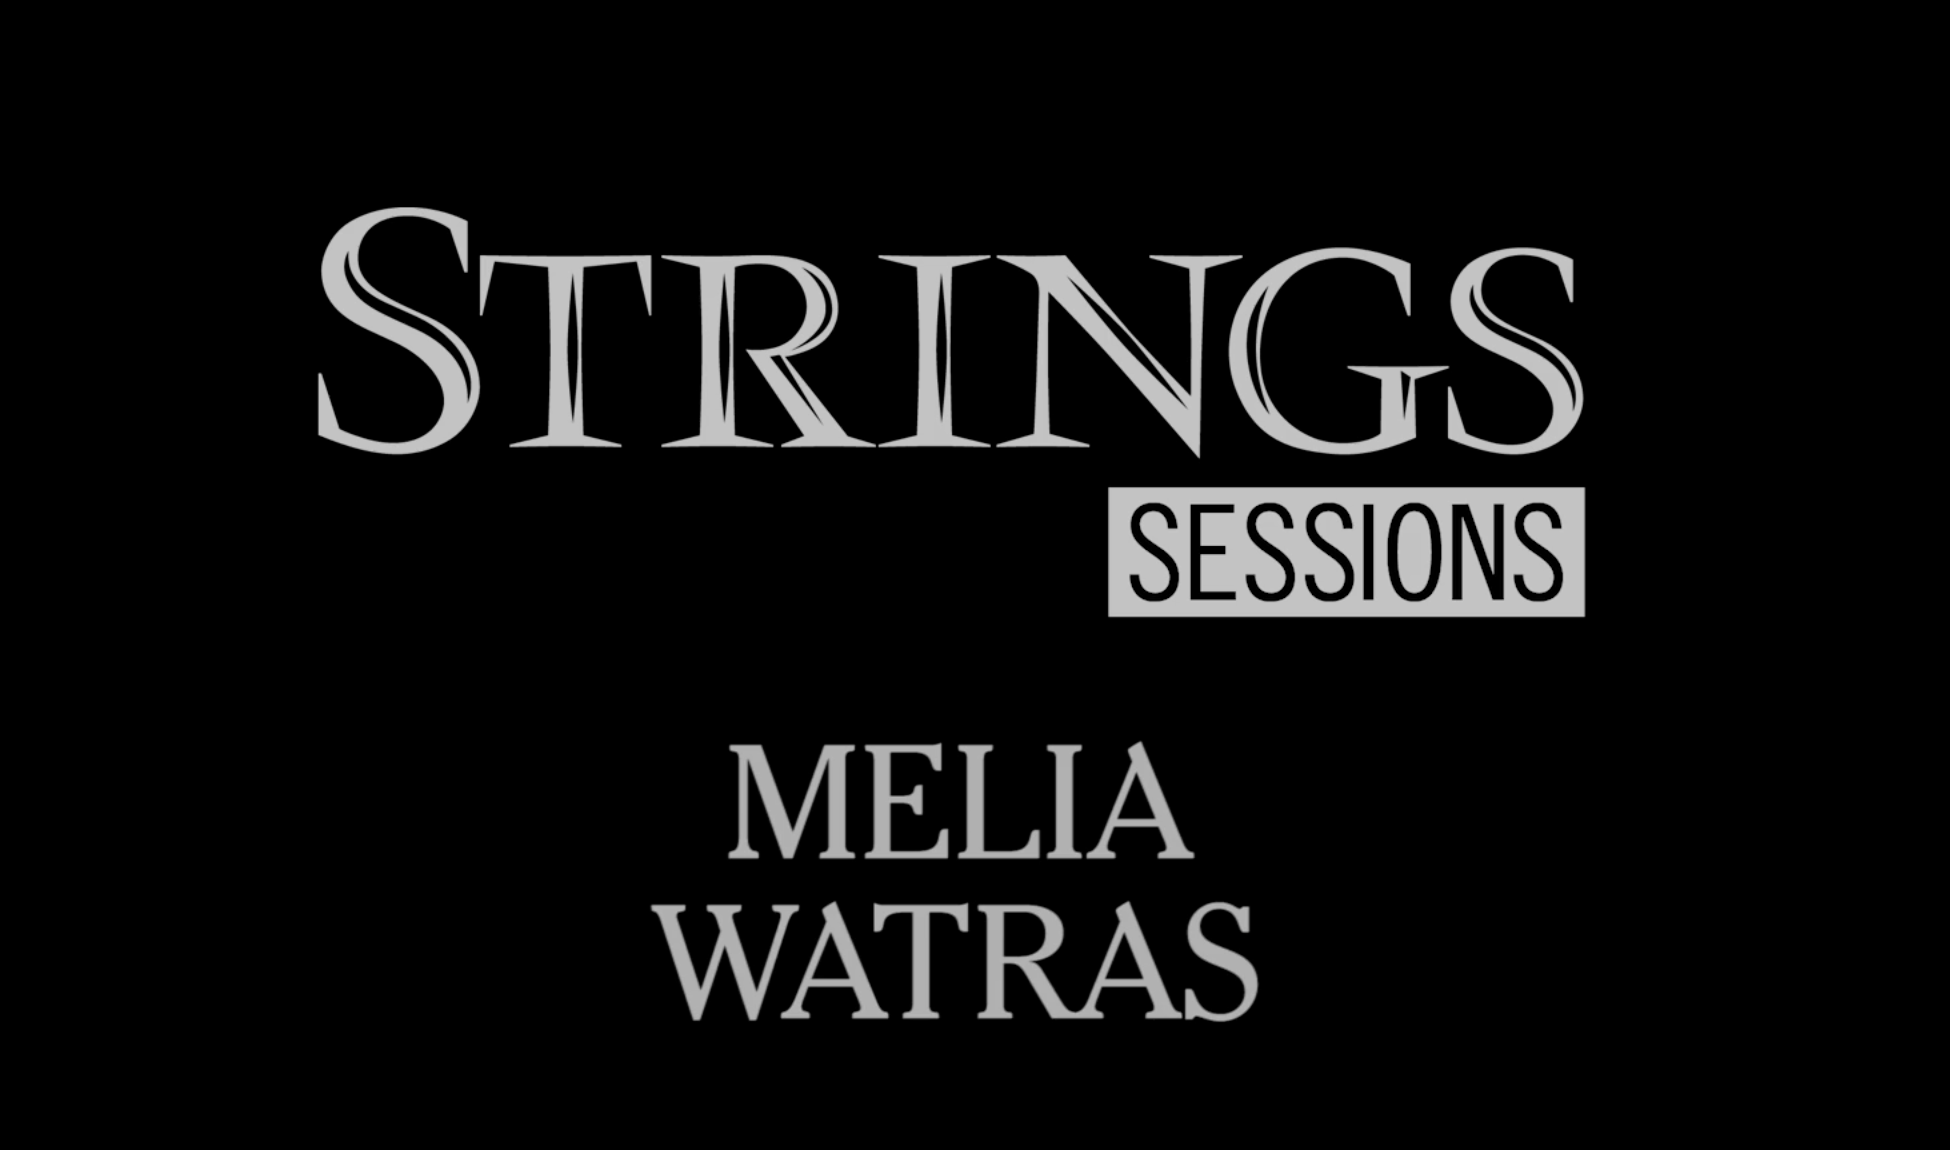 Strings Sessions presents Melia Watras and Michael Jinsoo Lim Violist Melia Watras and violinist Michael Jinsoo Lim stop by the Strings studio to perform works by Melia Watras and Atar Arad: Watras: Lament (2016); Watras: Luminous Points (2014); Arad: Esther (2007). Recorded live at Strings studio, Richmond, CA; released on June 9, 2017. Audio/ Video Production by Joey Lusterman, Hugh O'Connor, Stephanie Powell, Megan Westberg and Olivia Wise.